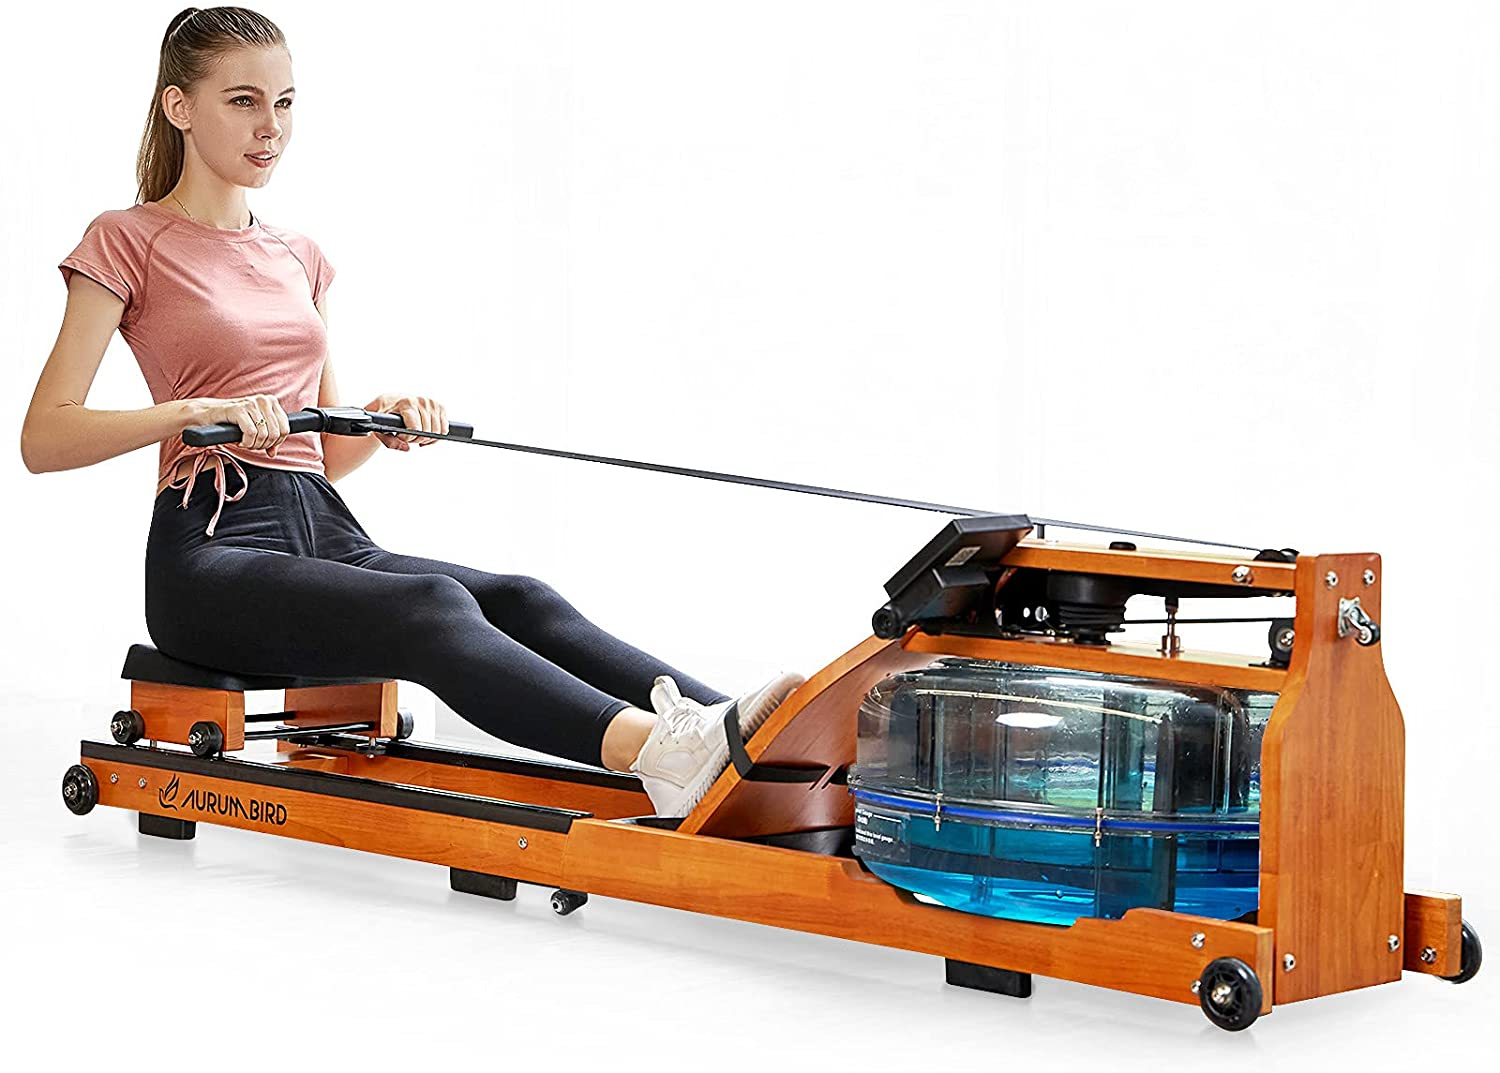 AURUMBIRD Household Folding Water Rowing Under blast sales LCD Machine Monito with Dealing full price reduction